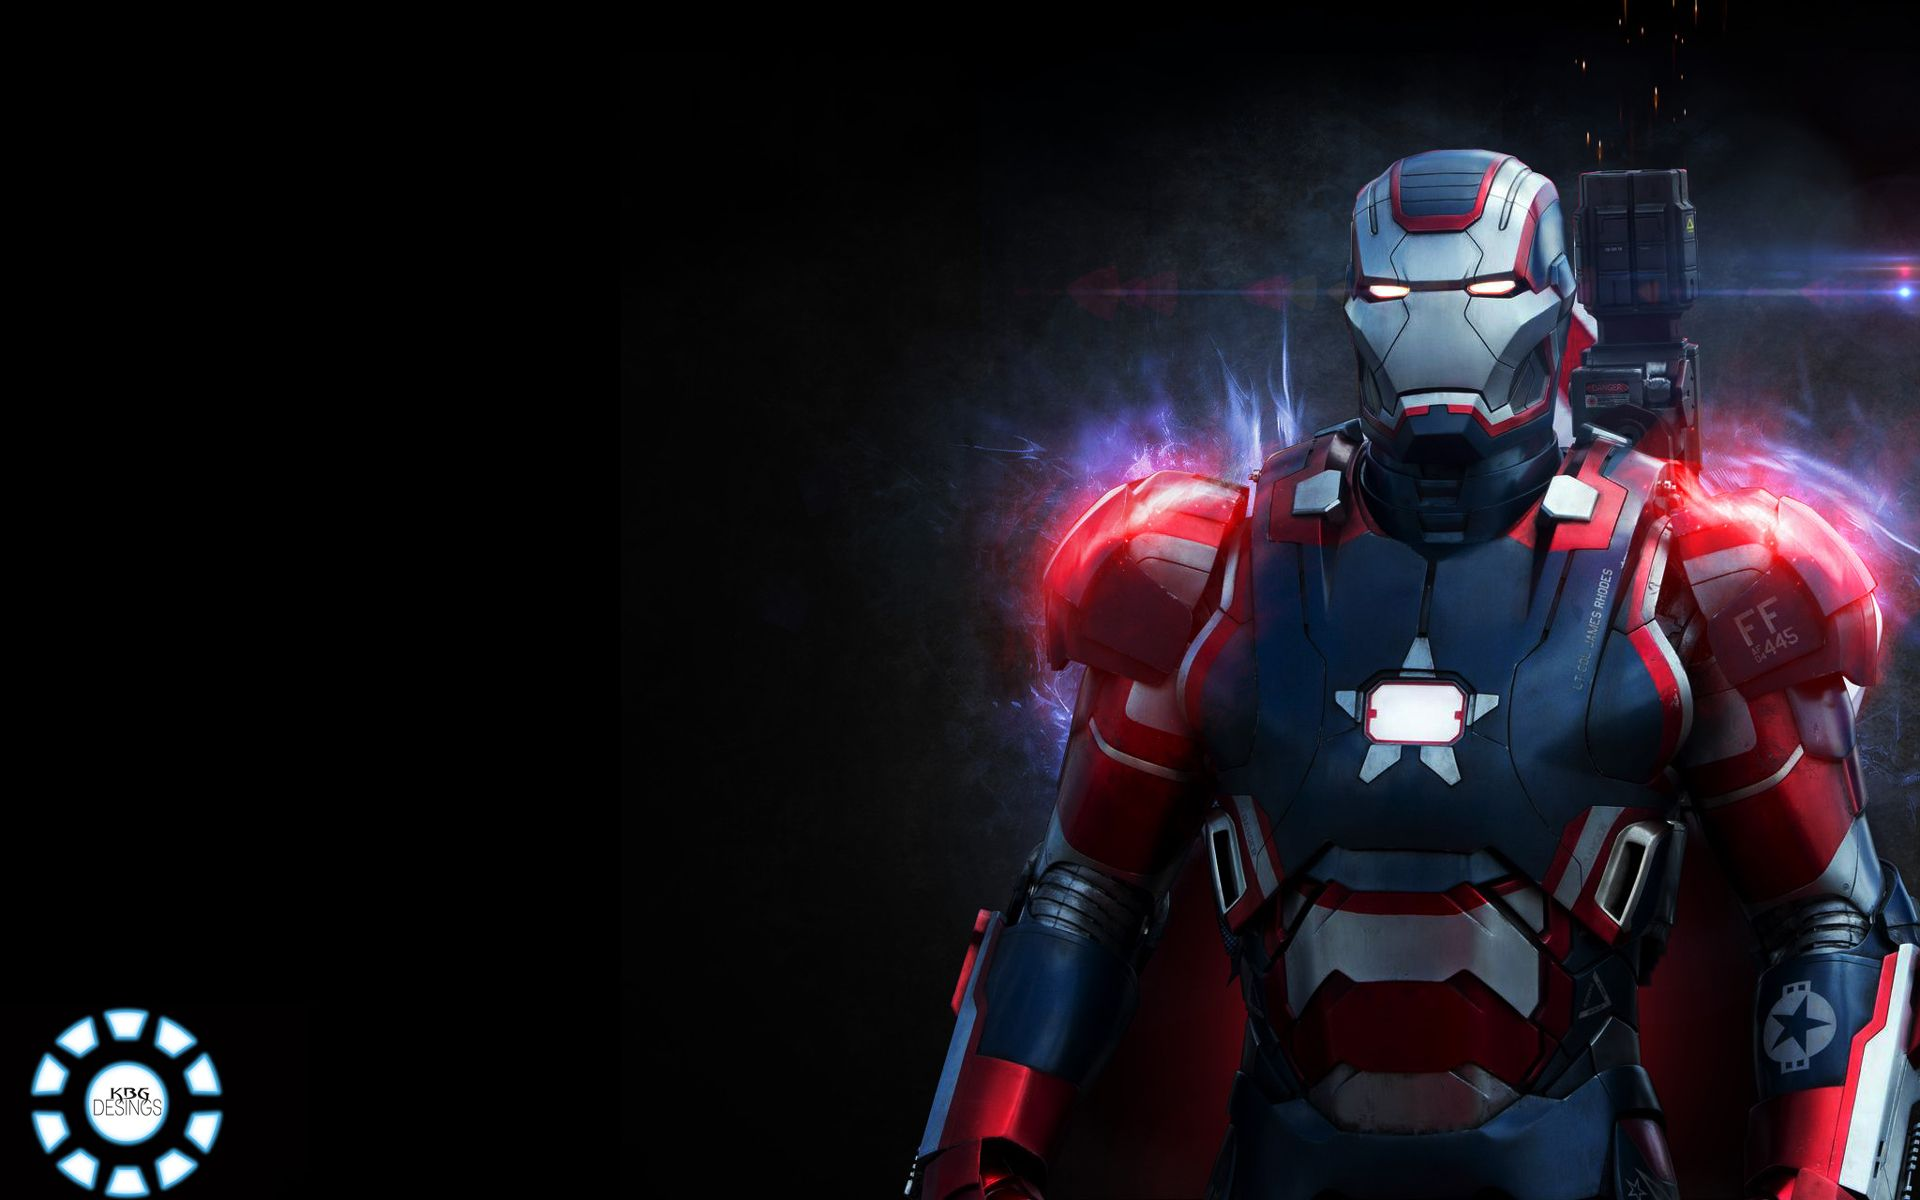 iron man 3 war machine hd wallpapers 5 photo | projects to try